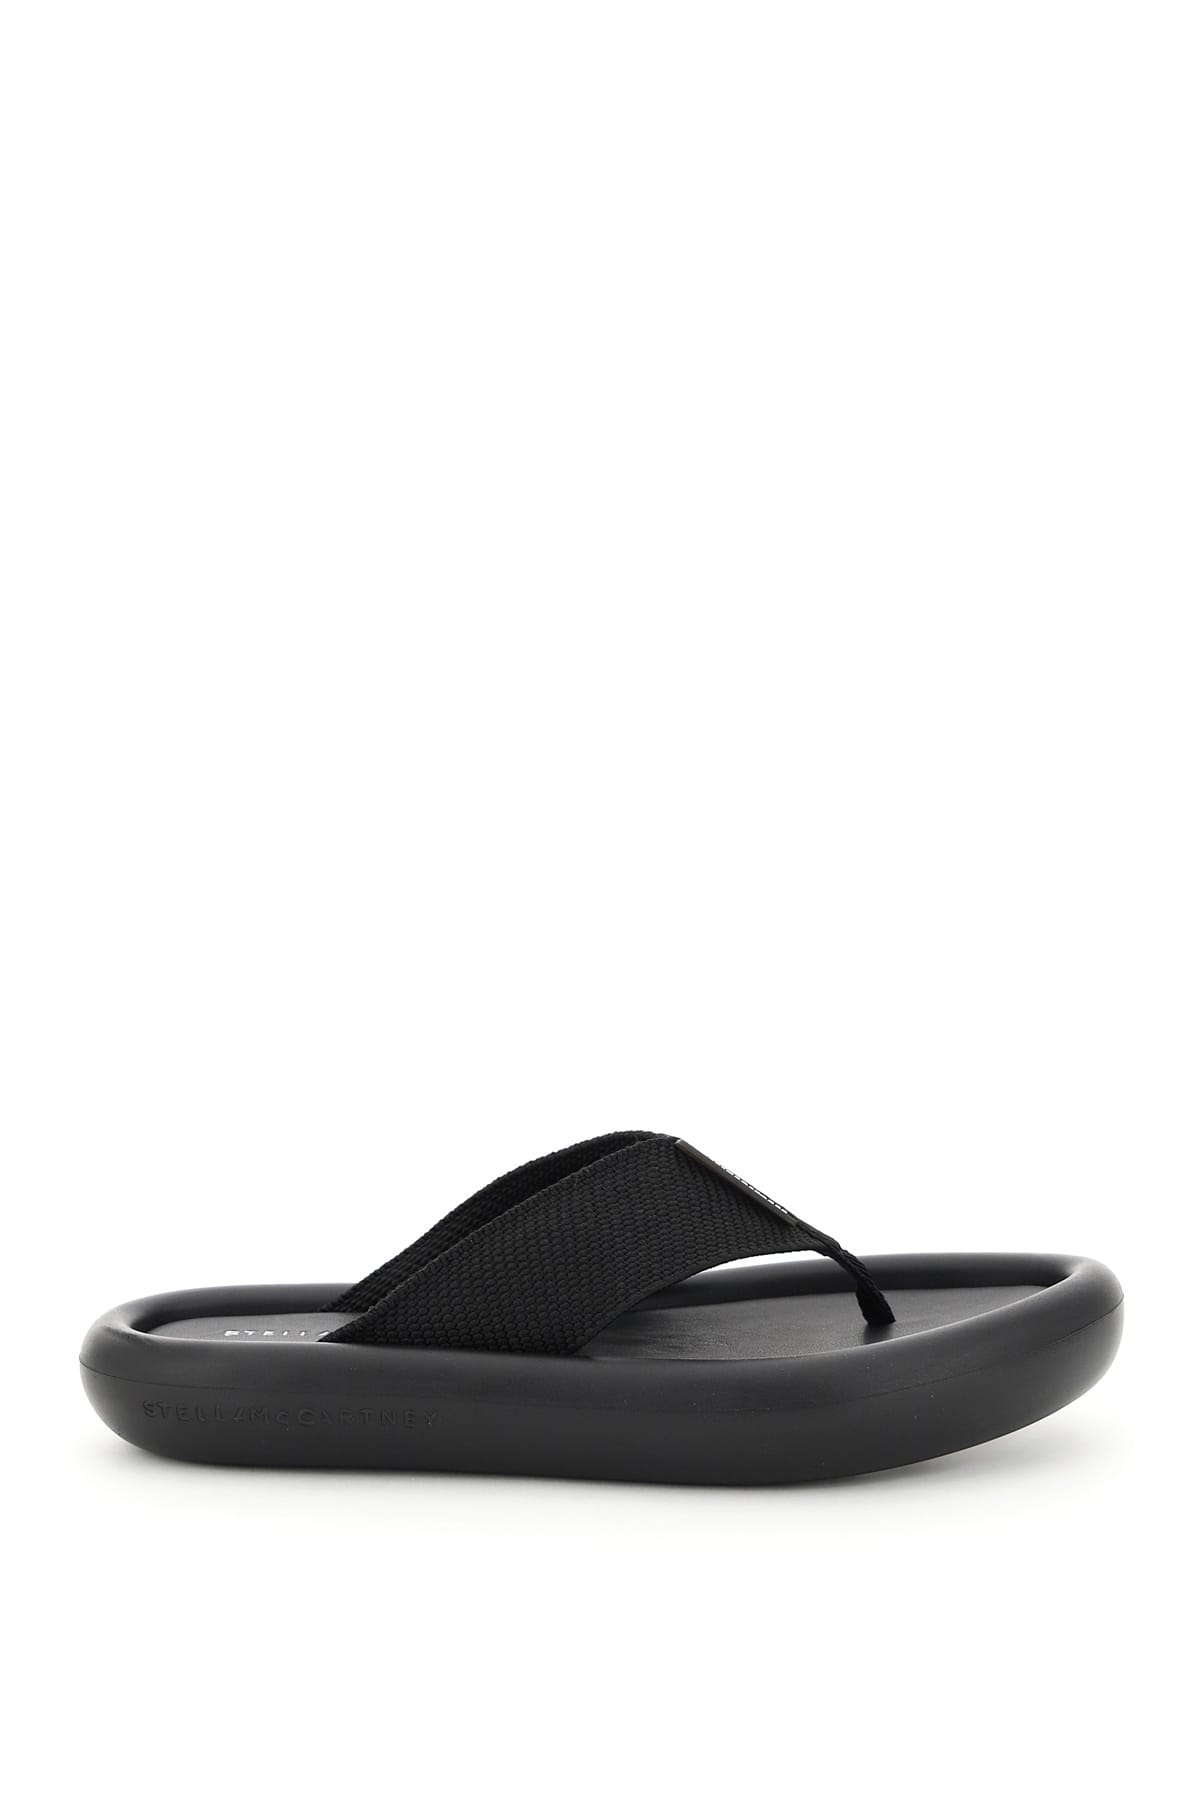 Buy Stella McCartney Air Slides online, shop Stella McCartney shoes with free shipping